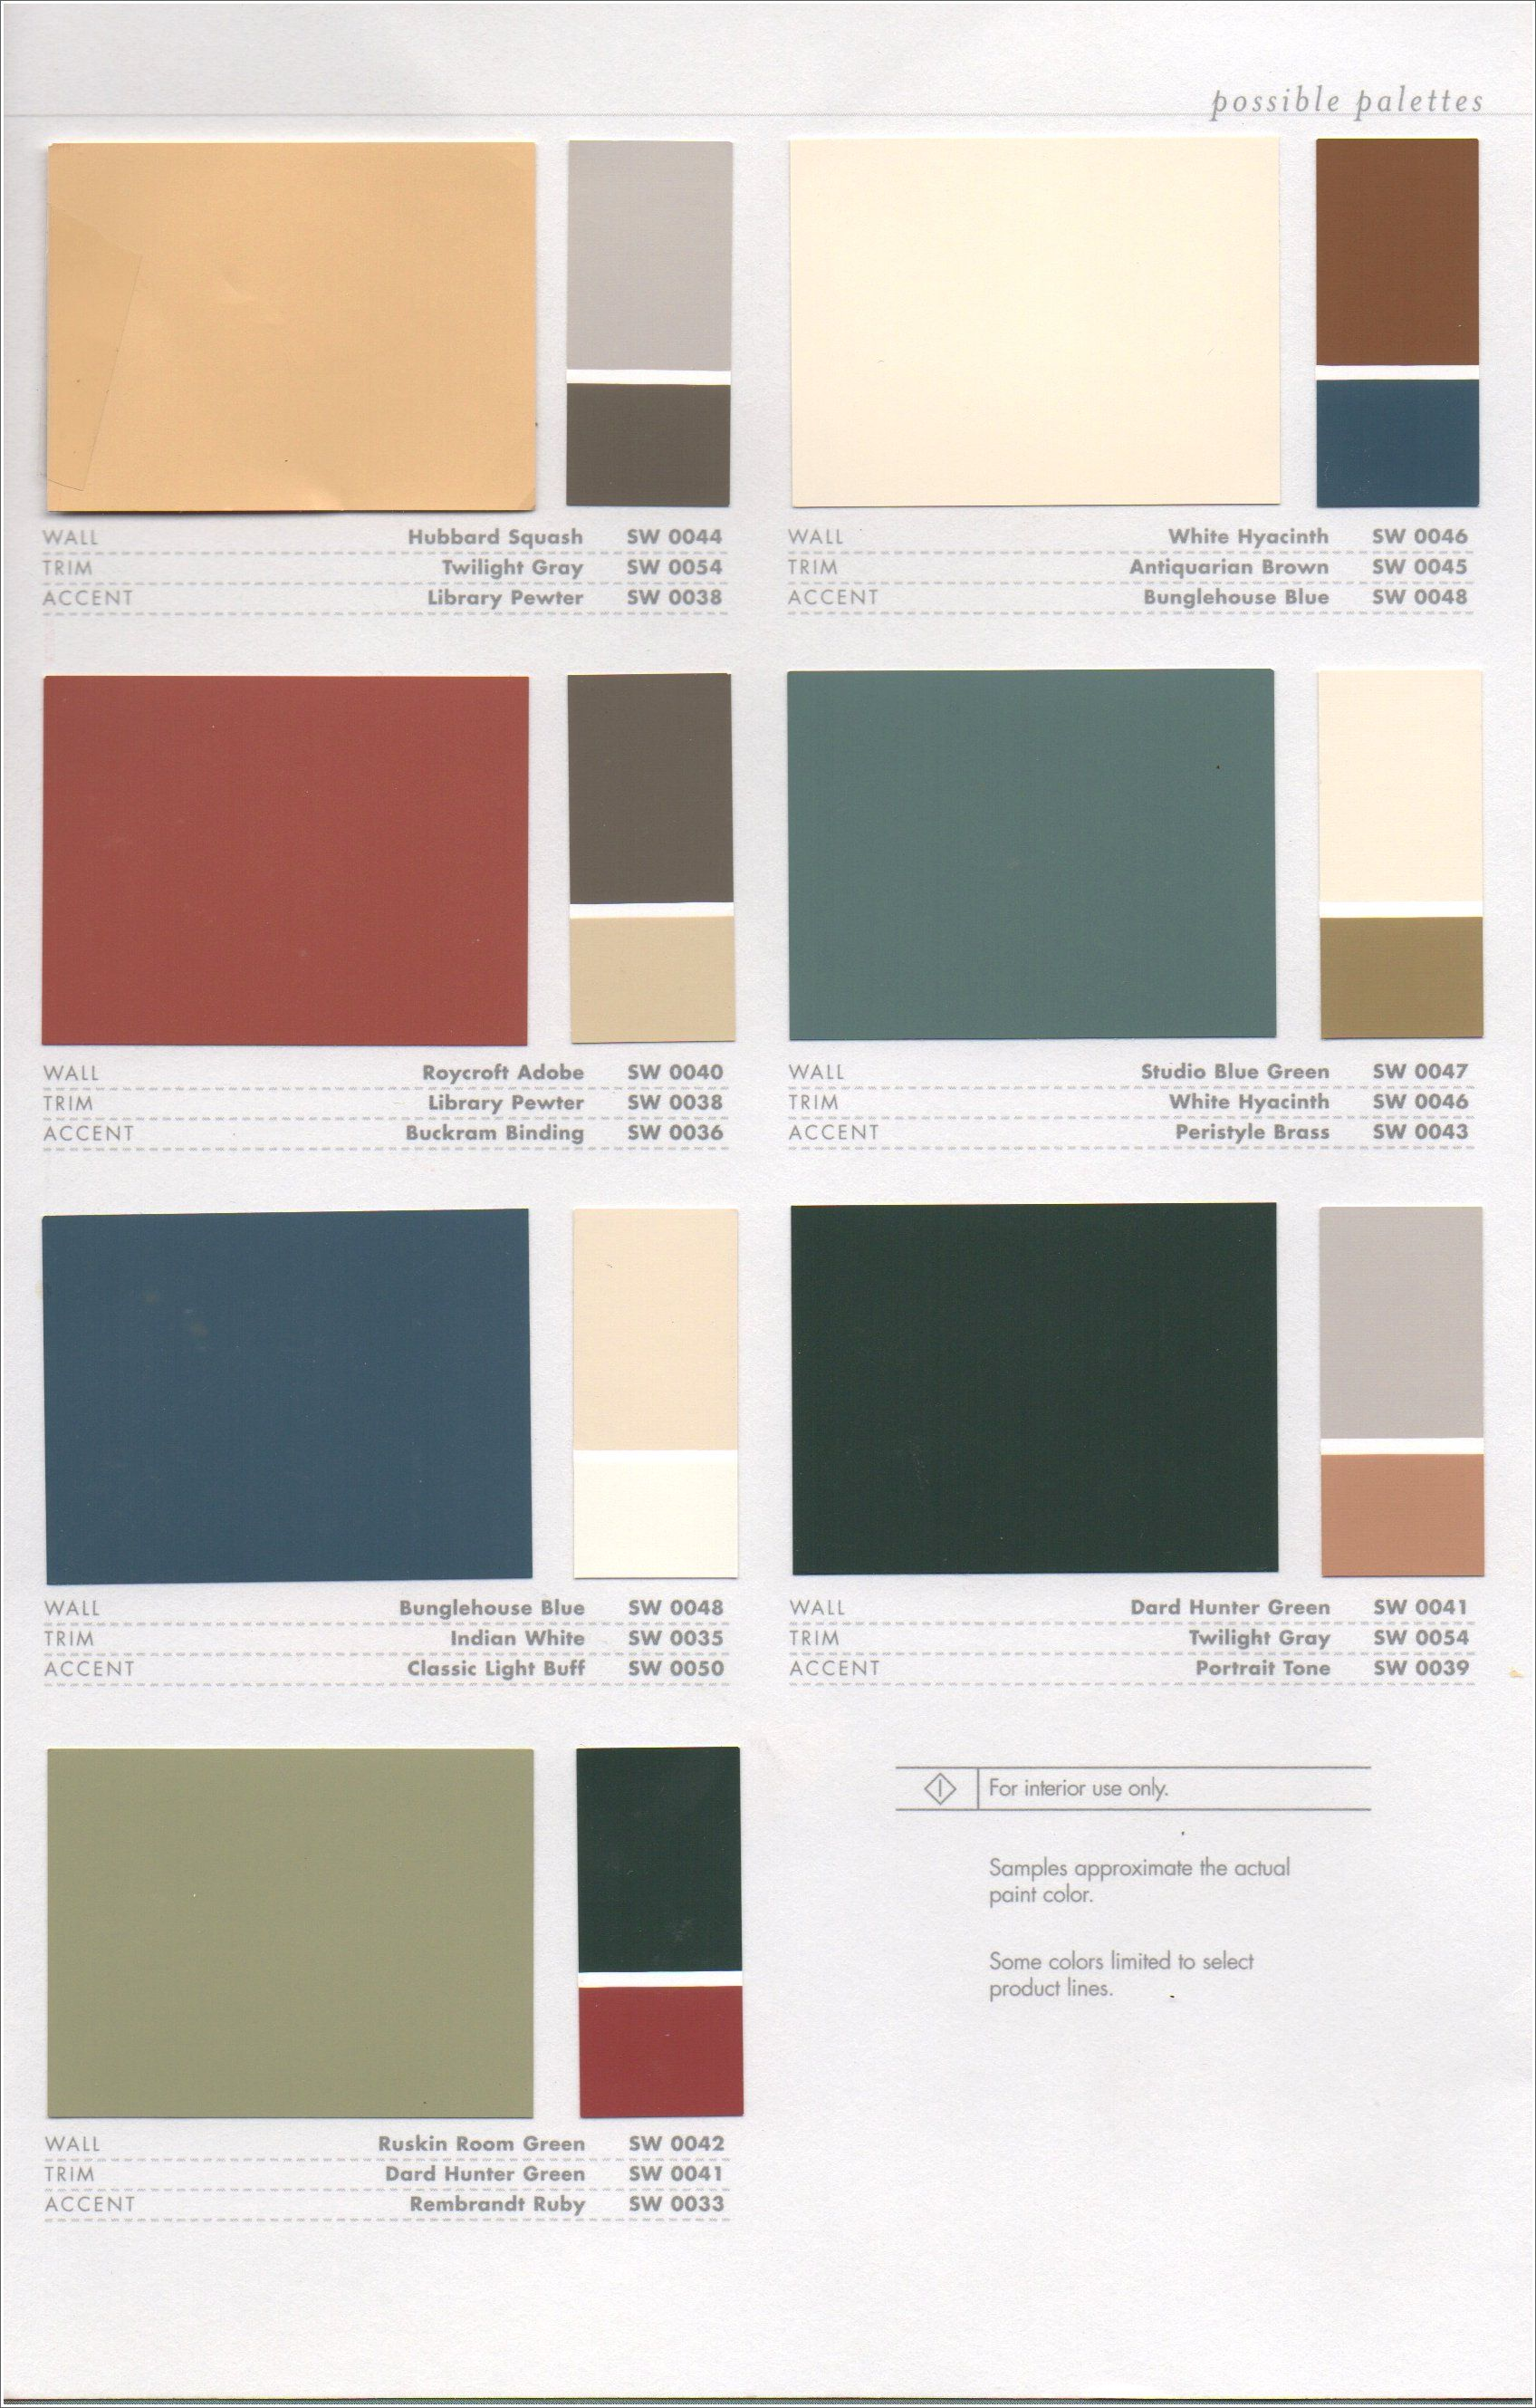 Modern exterior paint colors for houses interior colors Home interior color schemes